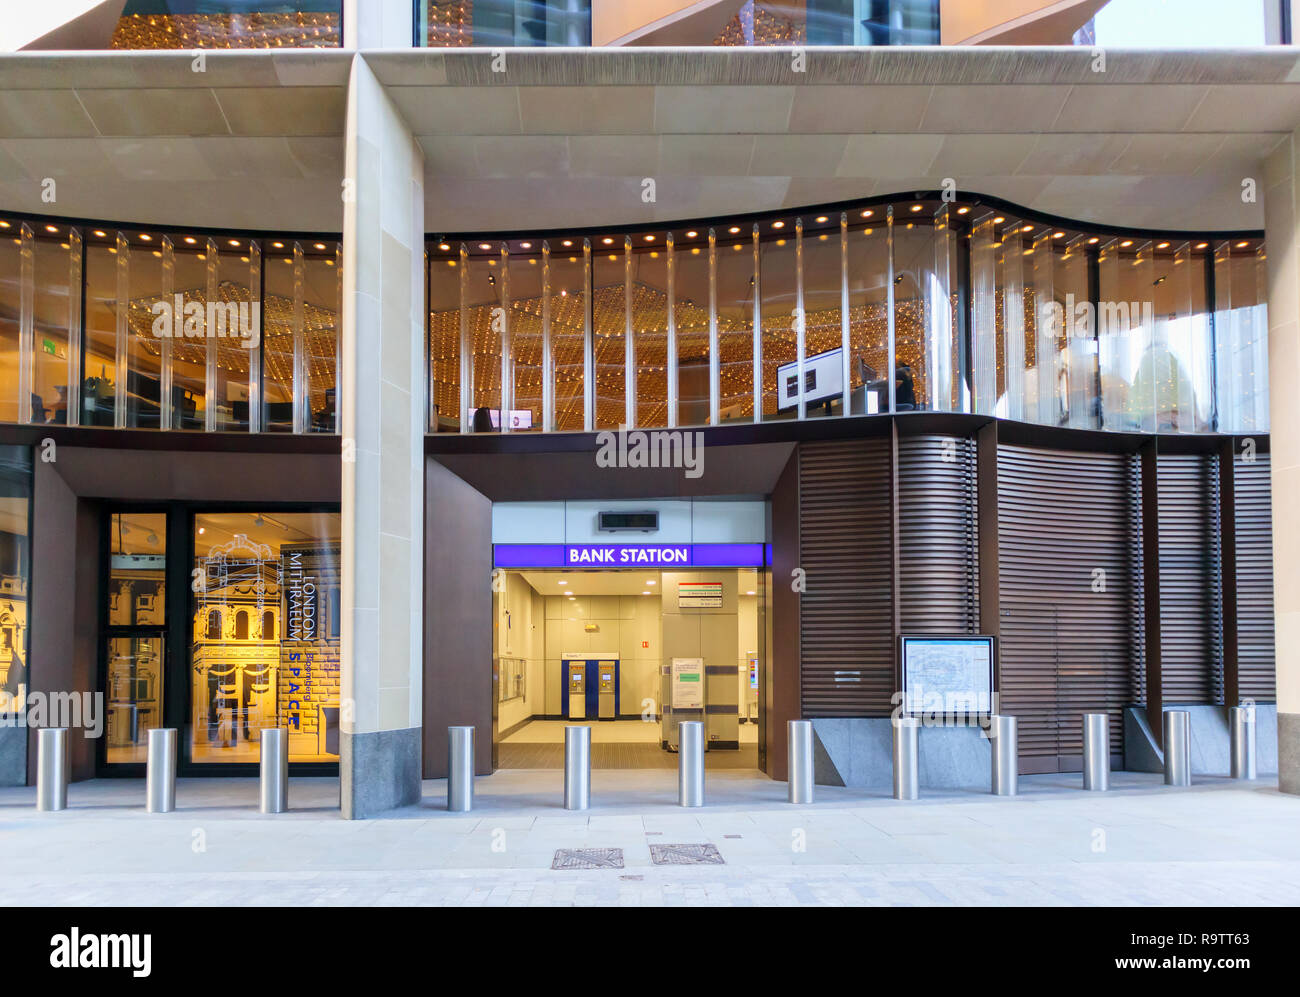 Illuminated name sign at the new entrance to Bank Tube Station under the Bloomberg building in Walbrook, London EC4 - Stock Image